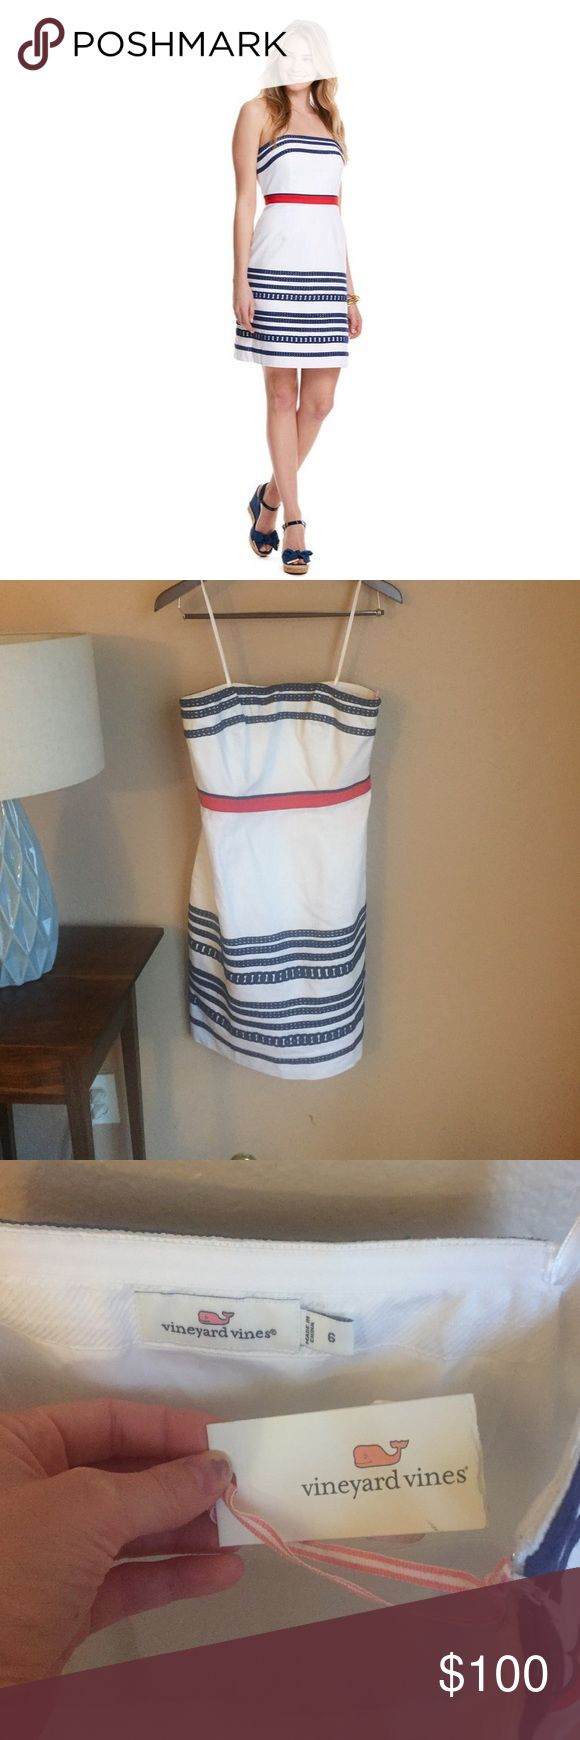 """NWT Vineyard Vines Strapless Dress. Size 6 NWT vineyard vines strapless dress (the straps in the picture are just the hanger straps). Fabrics: · 100% cotton   Features: · Strapless  · Navy lace applique stripes  · Layered contrast ribbons at waist  · Fully lined  · Invisible zipper at left side seam · Boning and tape on the interior bodice · Length: 30 1/2"""" (based off size 6)  · Imported Vineyard Vines Dresses"""